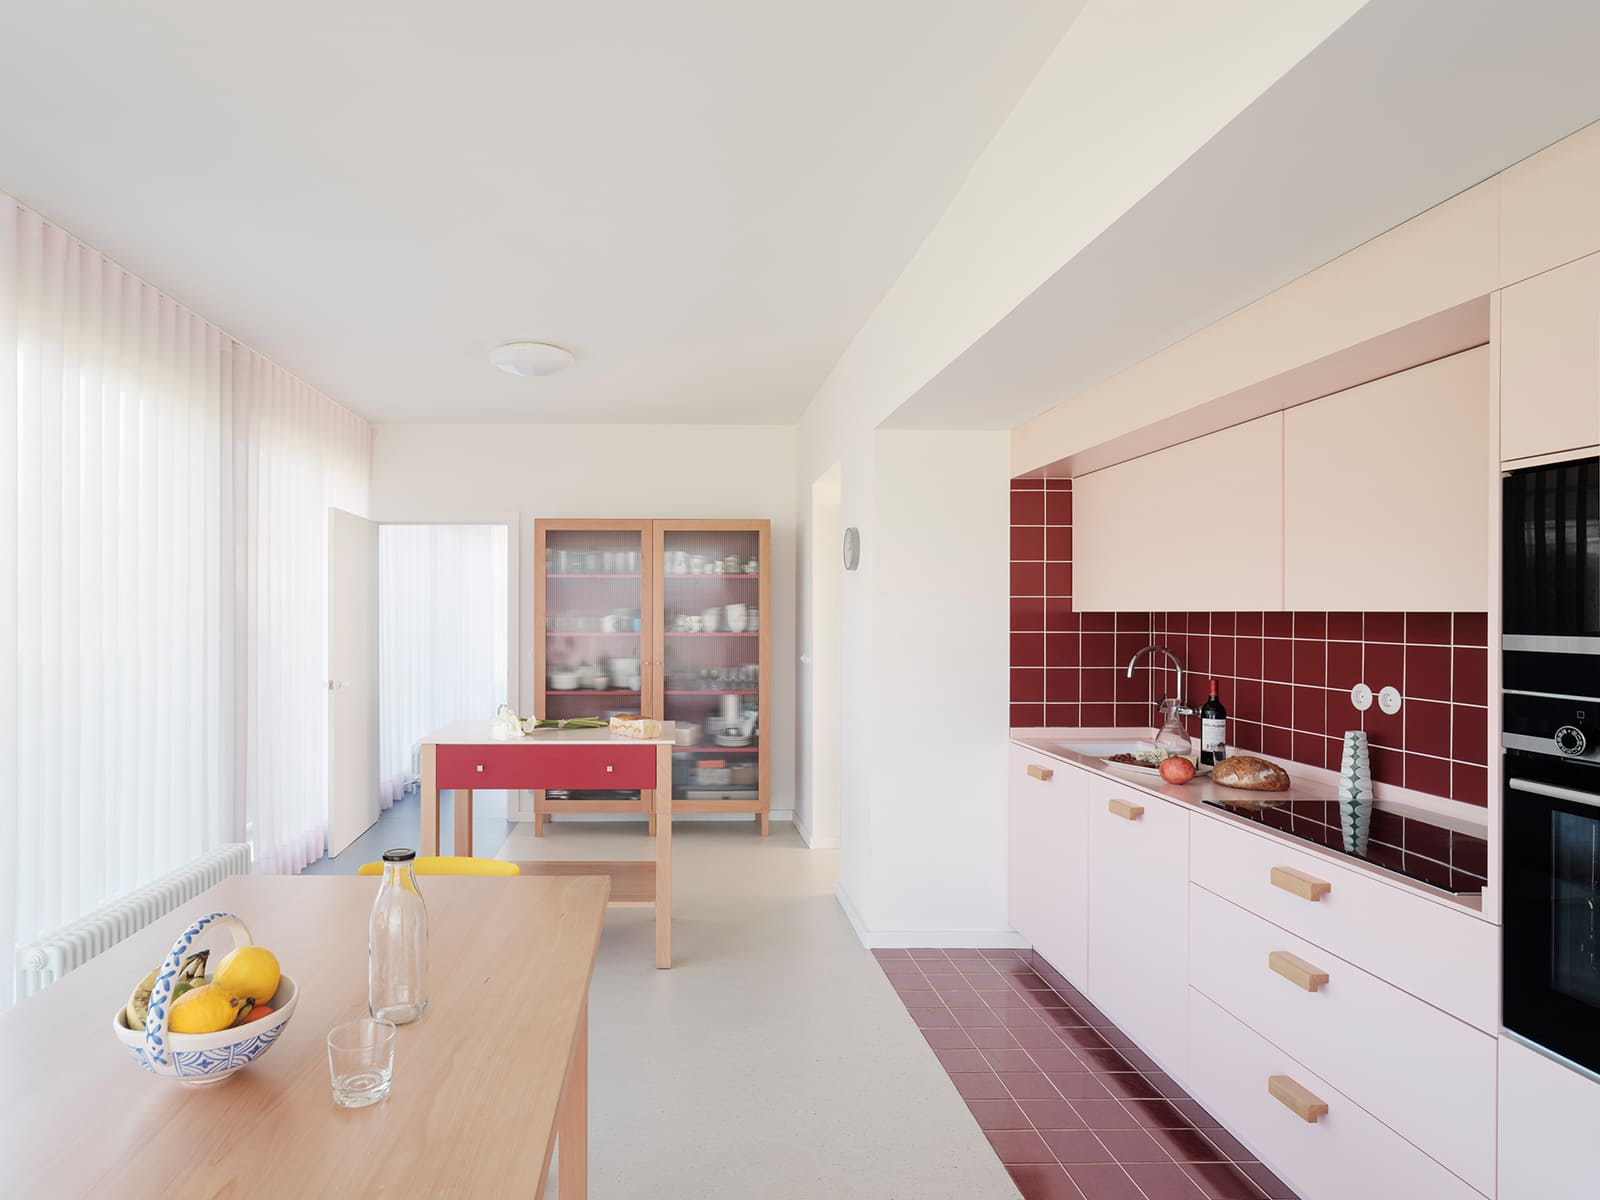 Re-House in Lujua  - 1 2 33